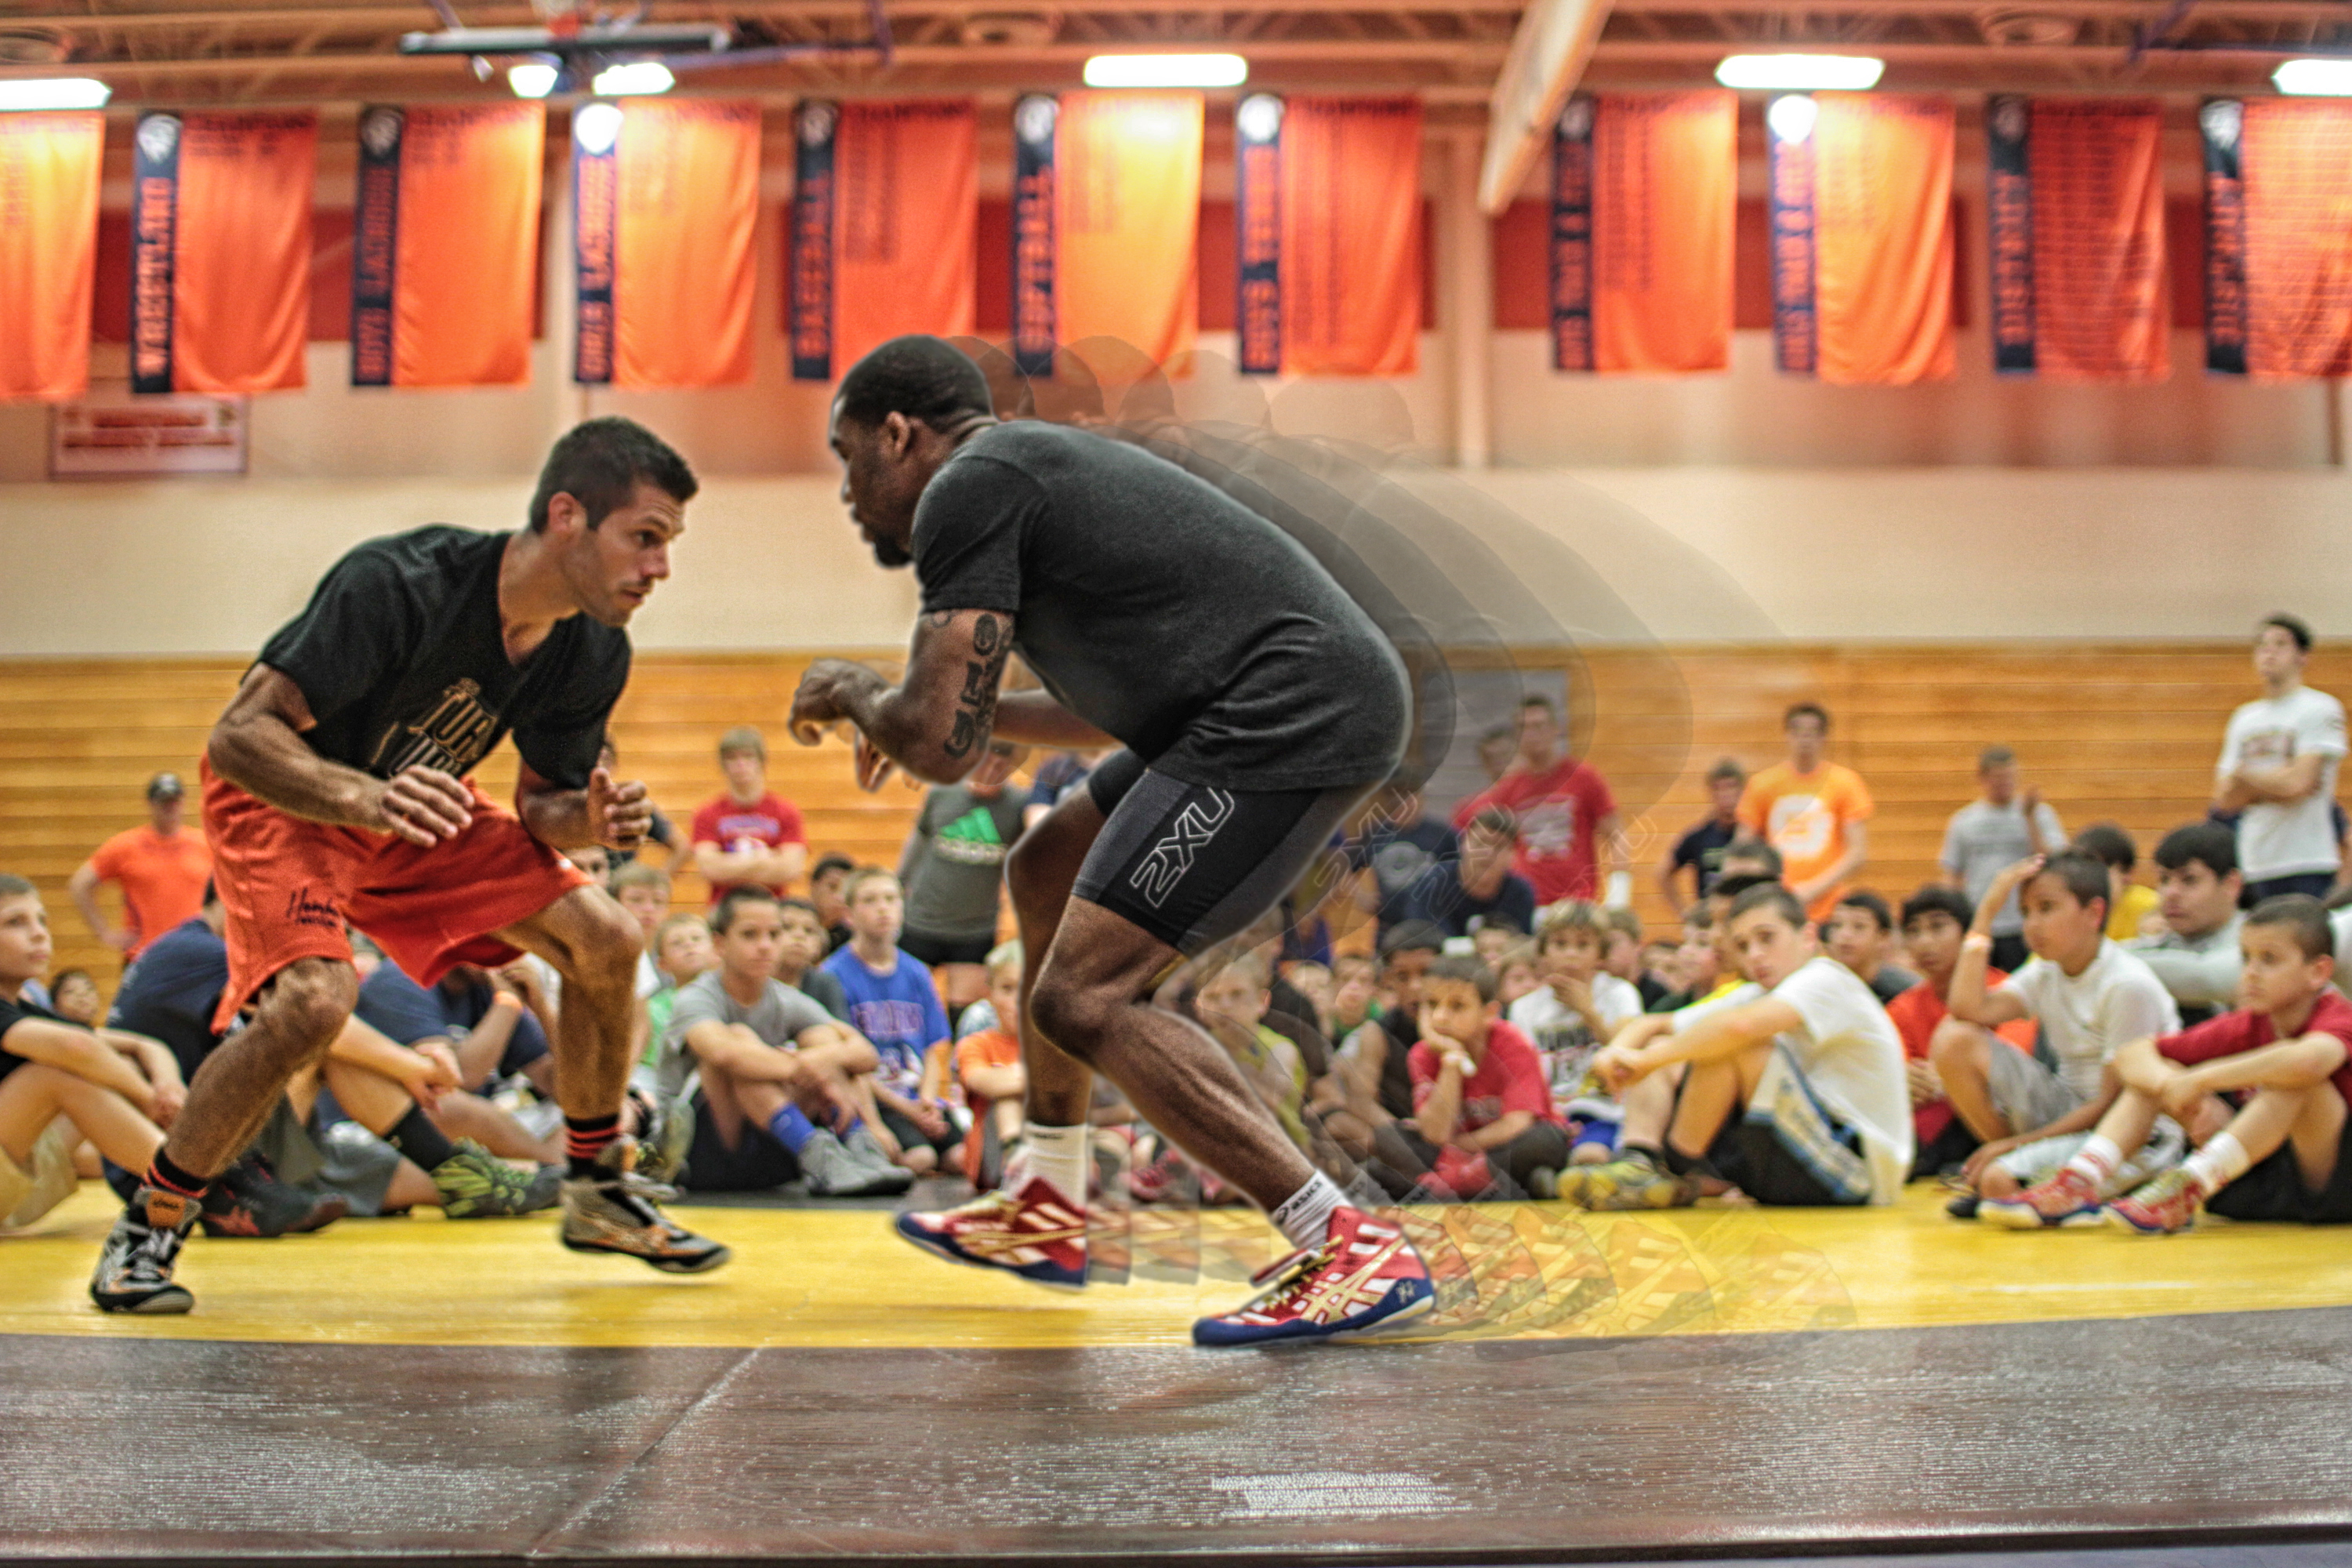 Trojan Wrestling Academy Day 3 with Jordan Burroughs